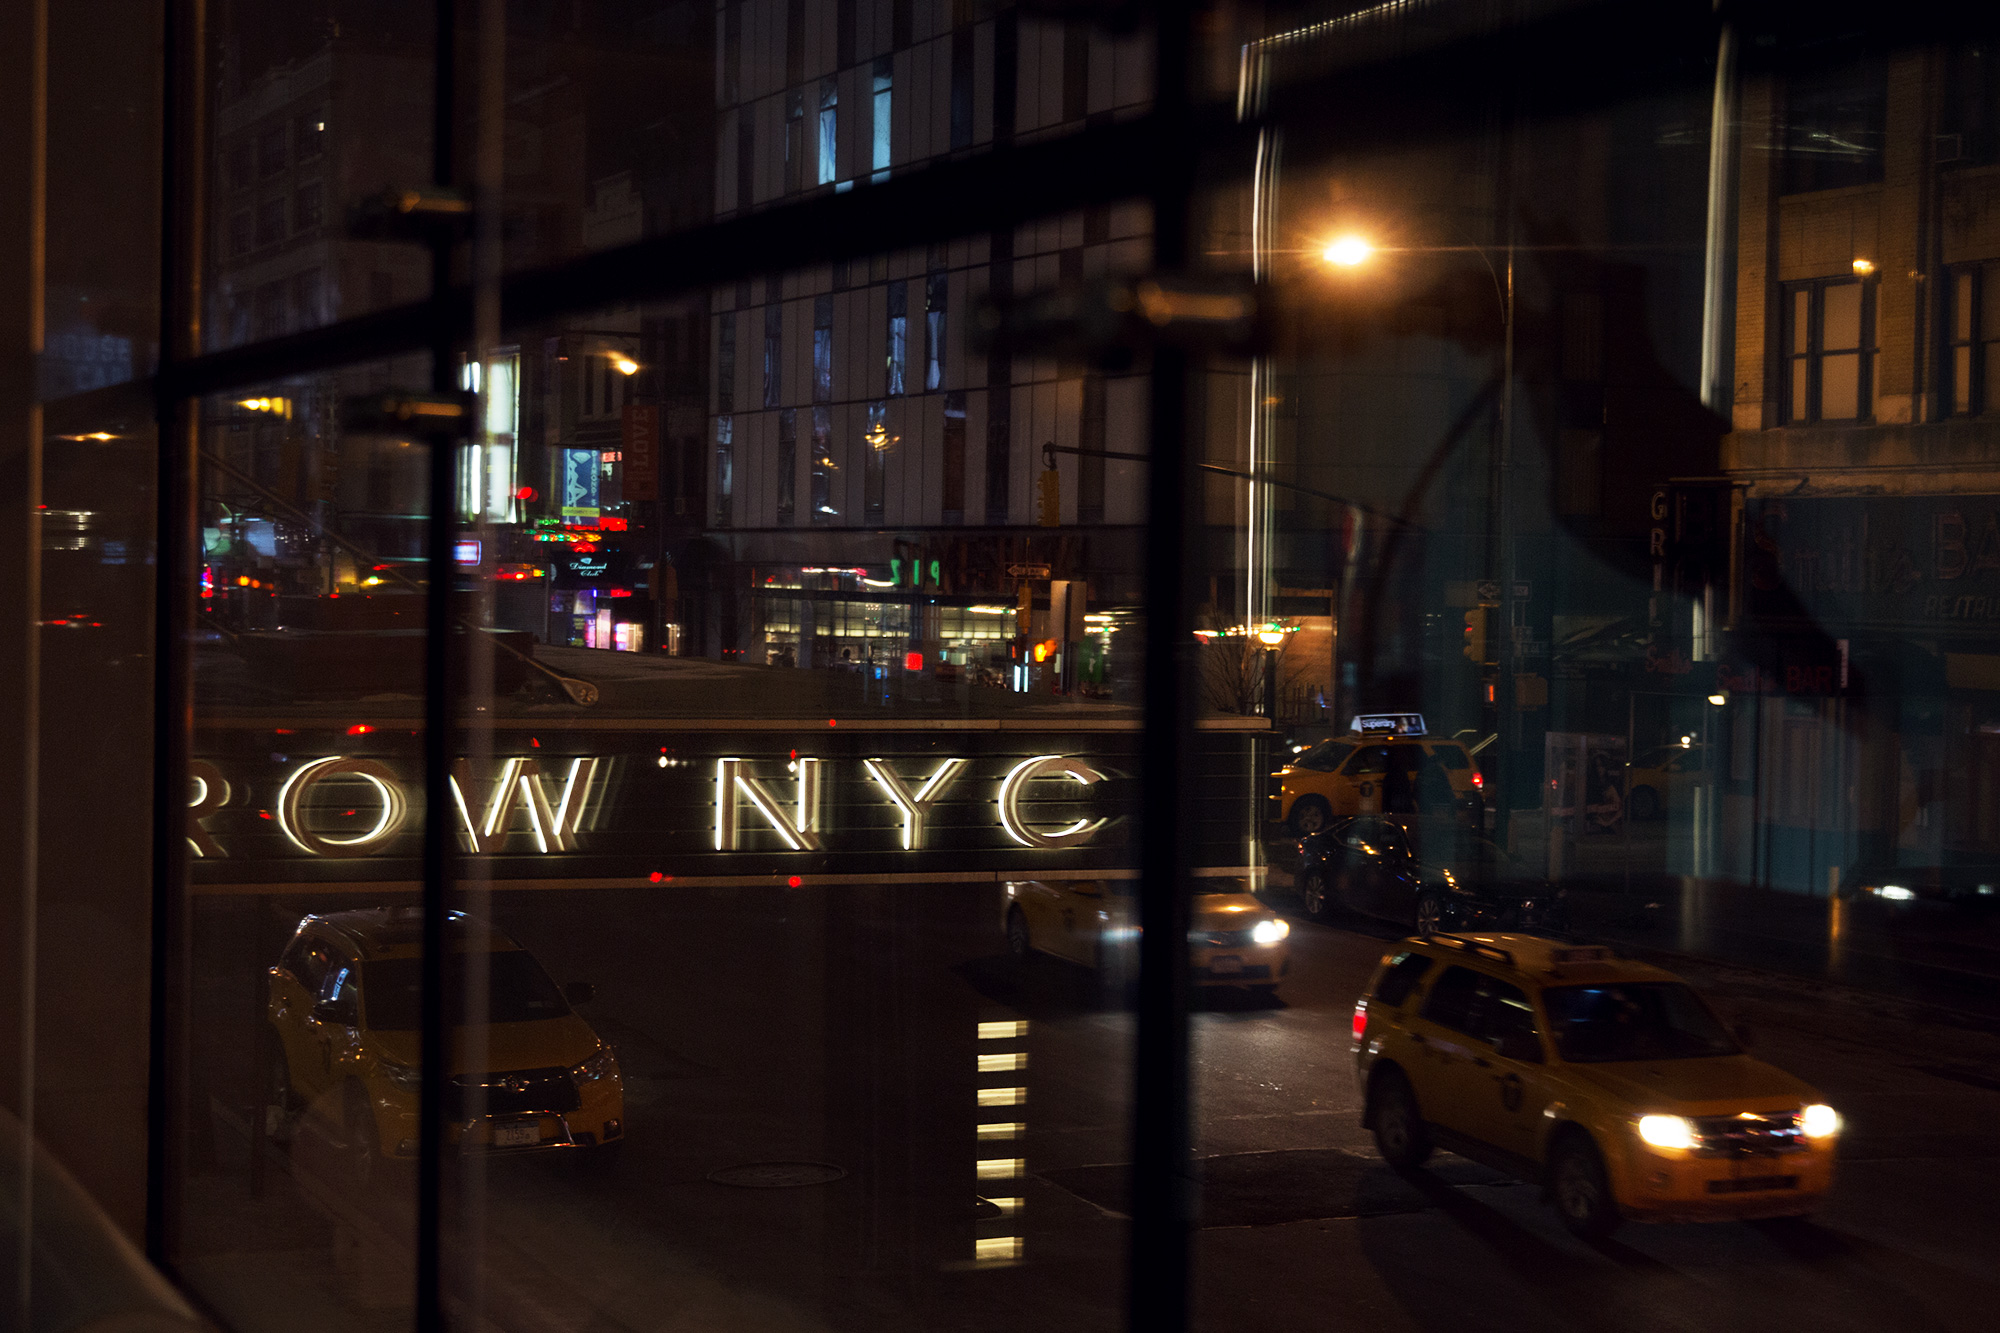 row nyc new york city times square hotel review